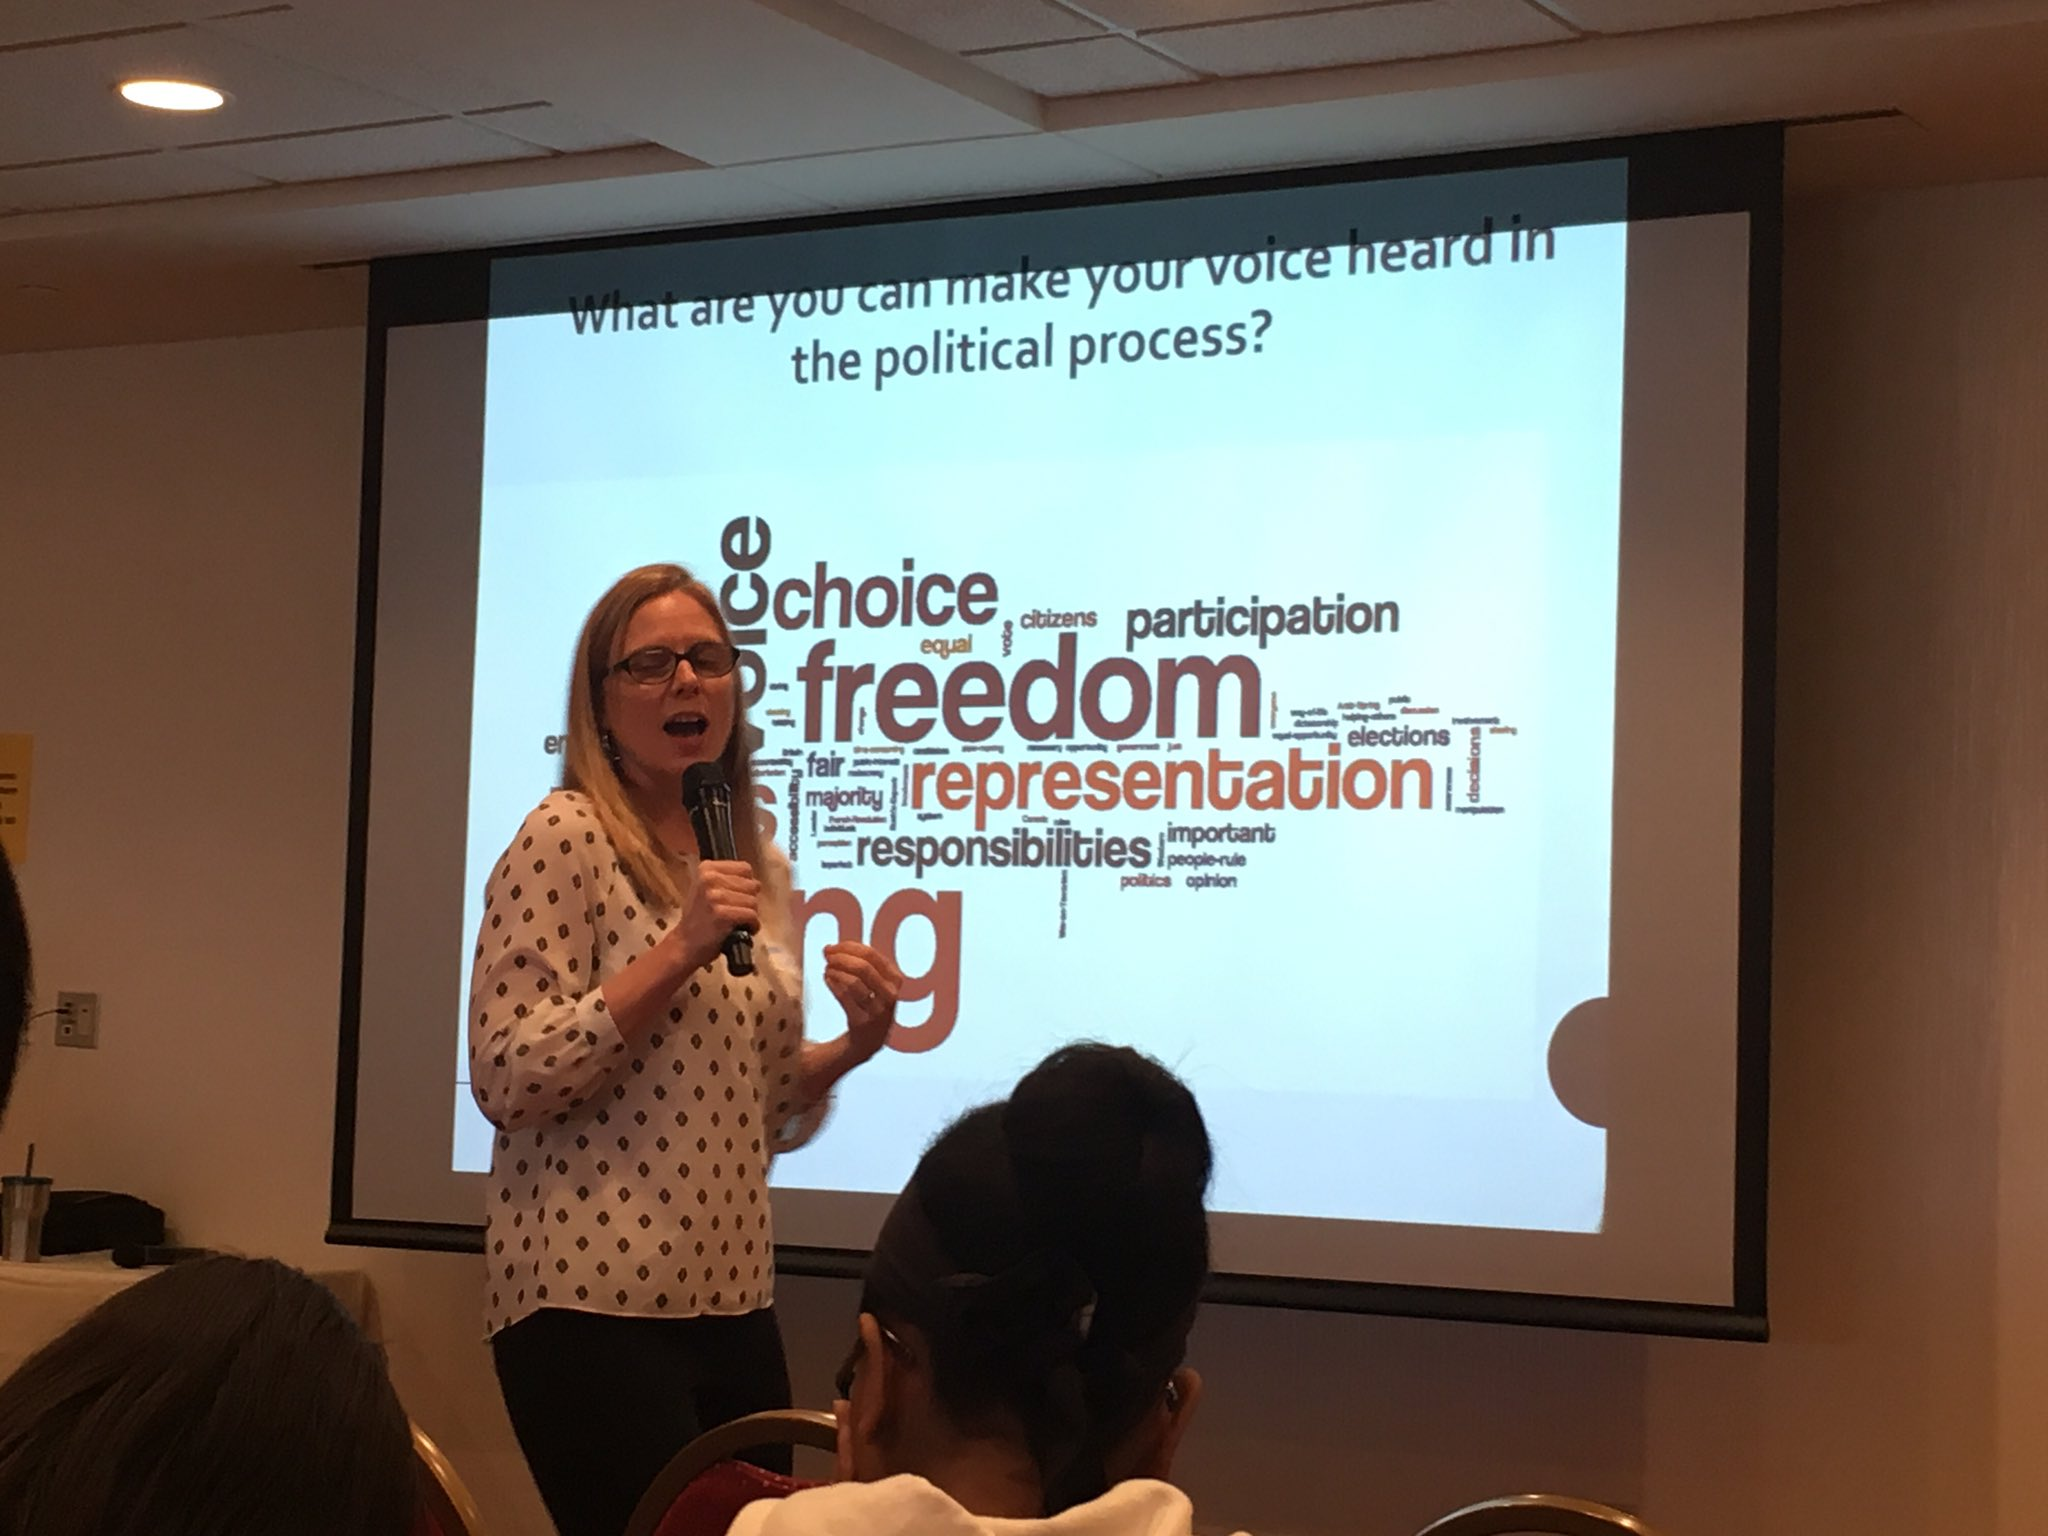 Enjoying #YDAC17 with @MNYouth - #GradMN youth are currently participating in an interactive training on advocacy & leadership! #GradNation https://t.co/5RrDybMXkC